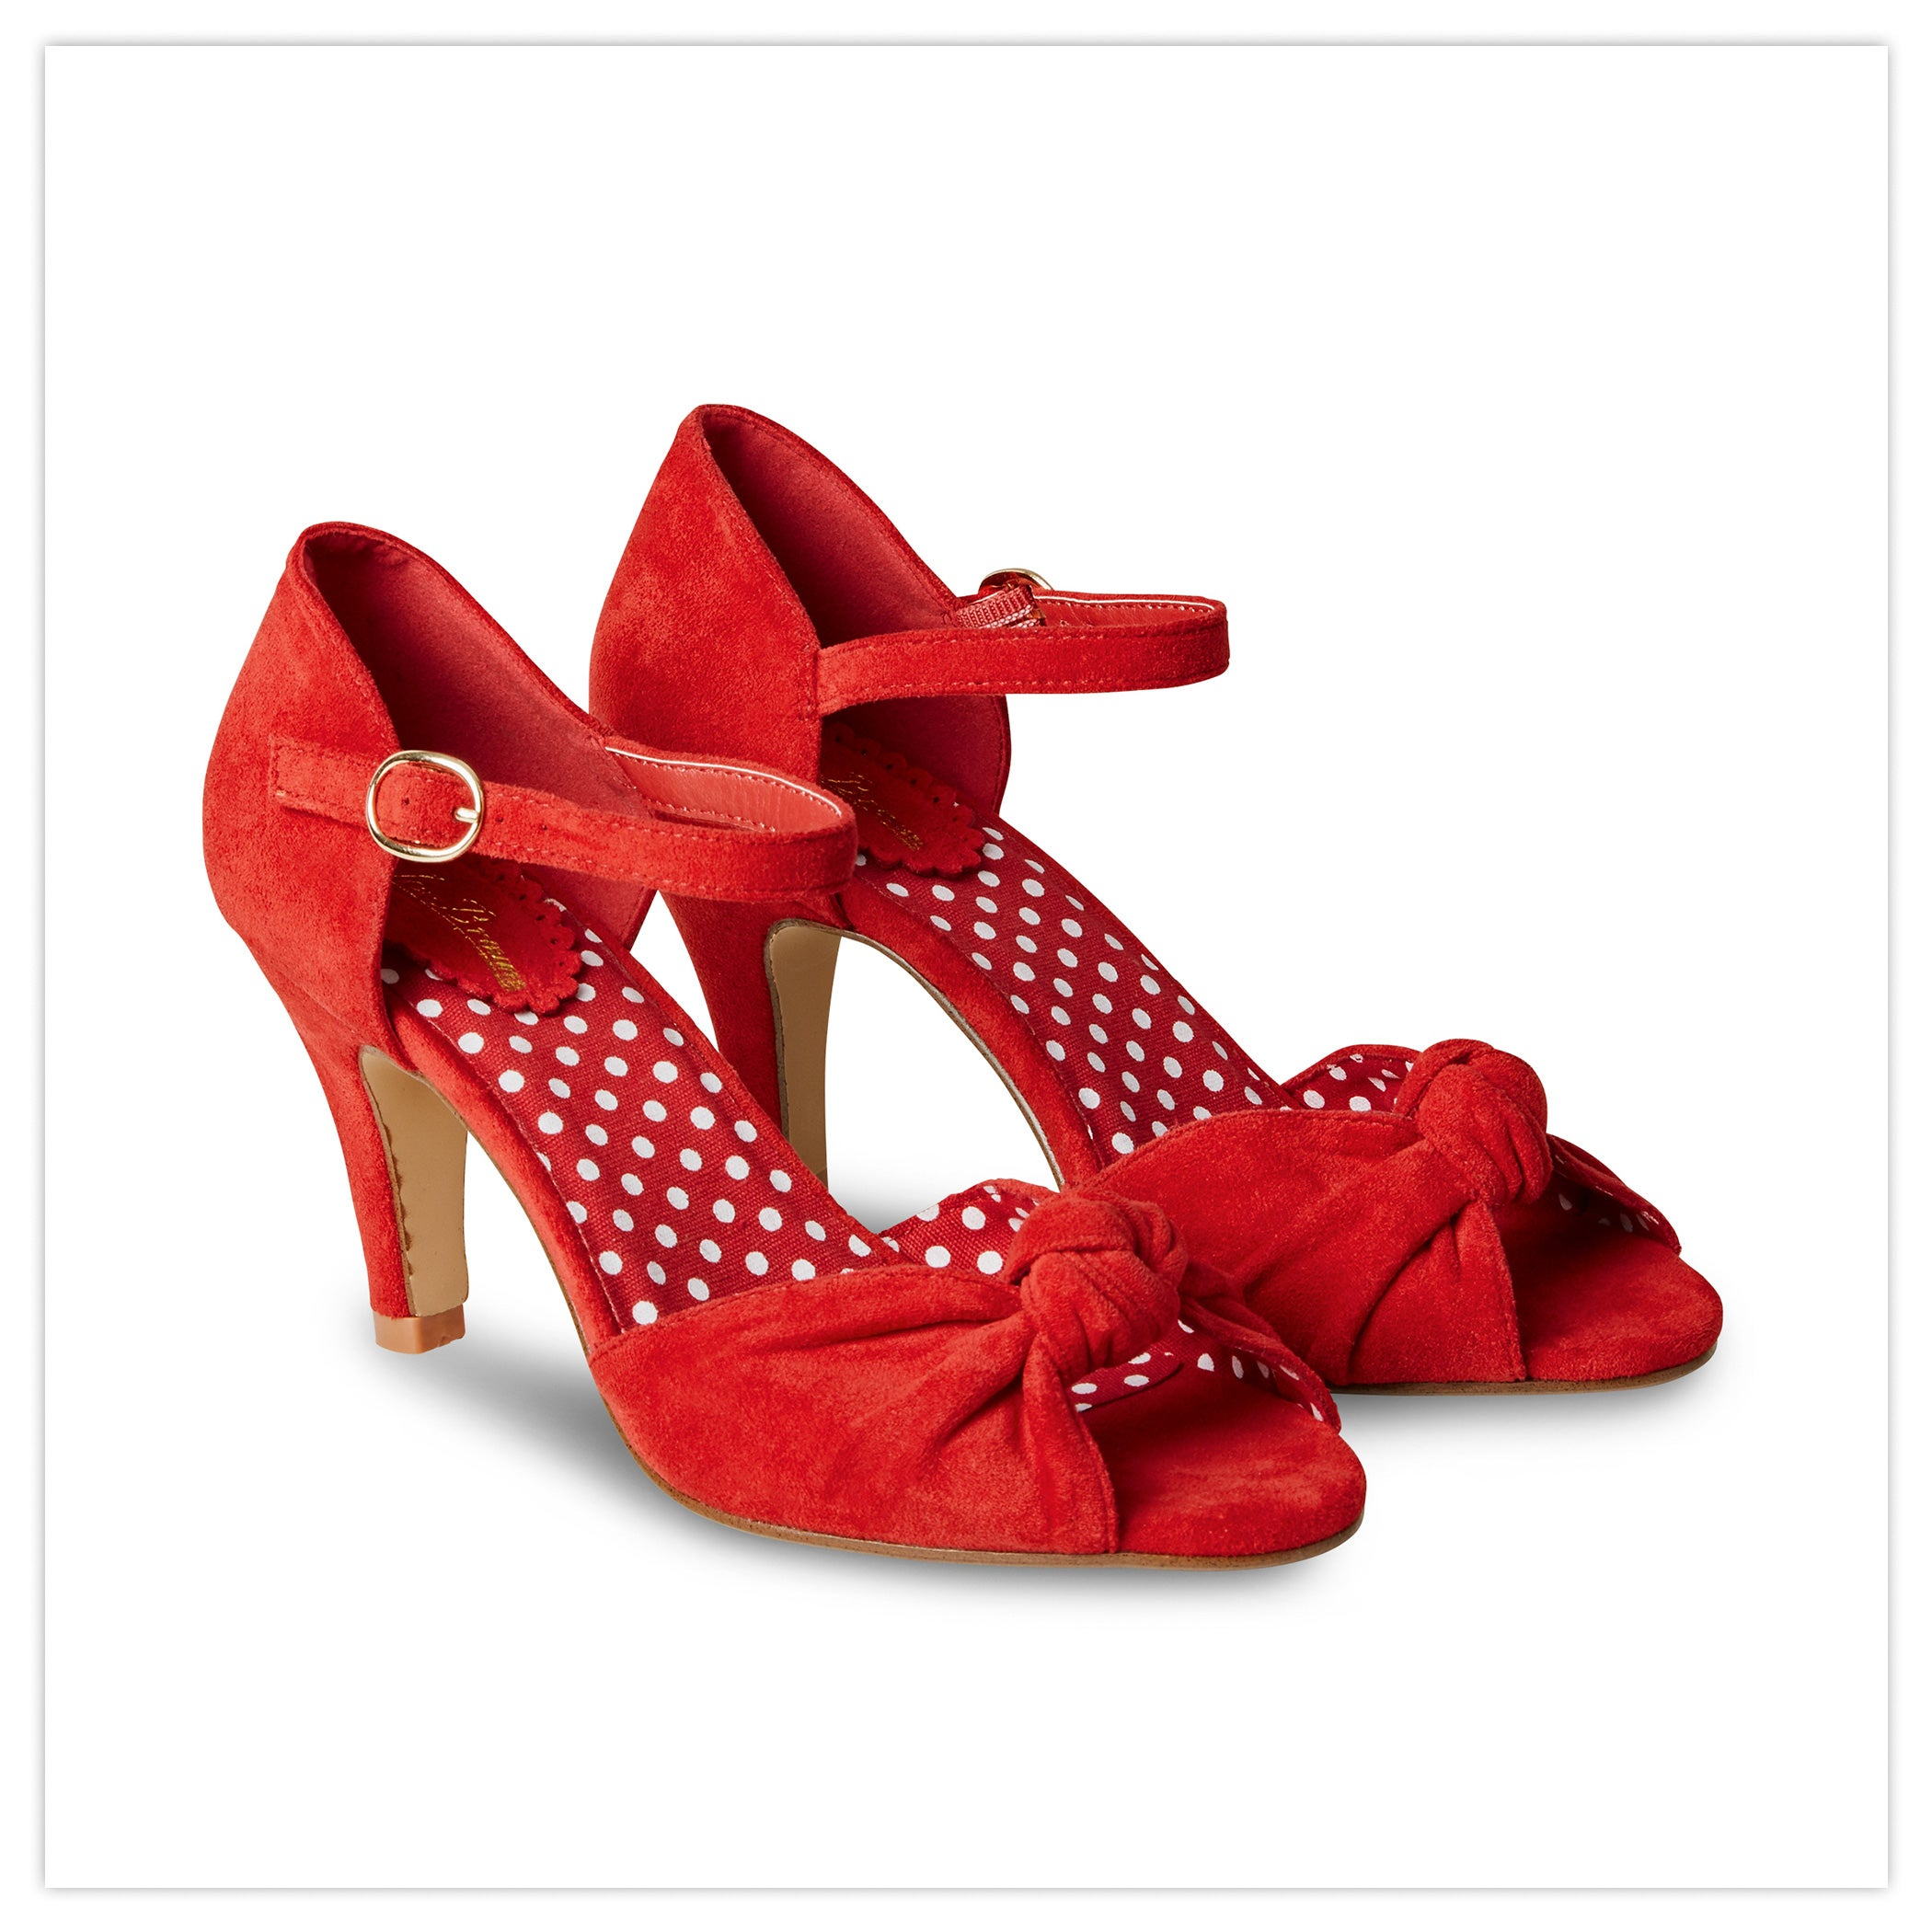 Oh Miss Scarlet Shoes